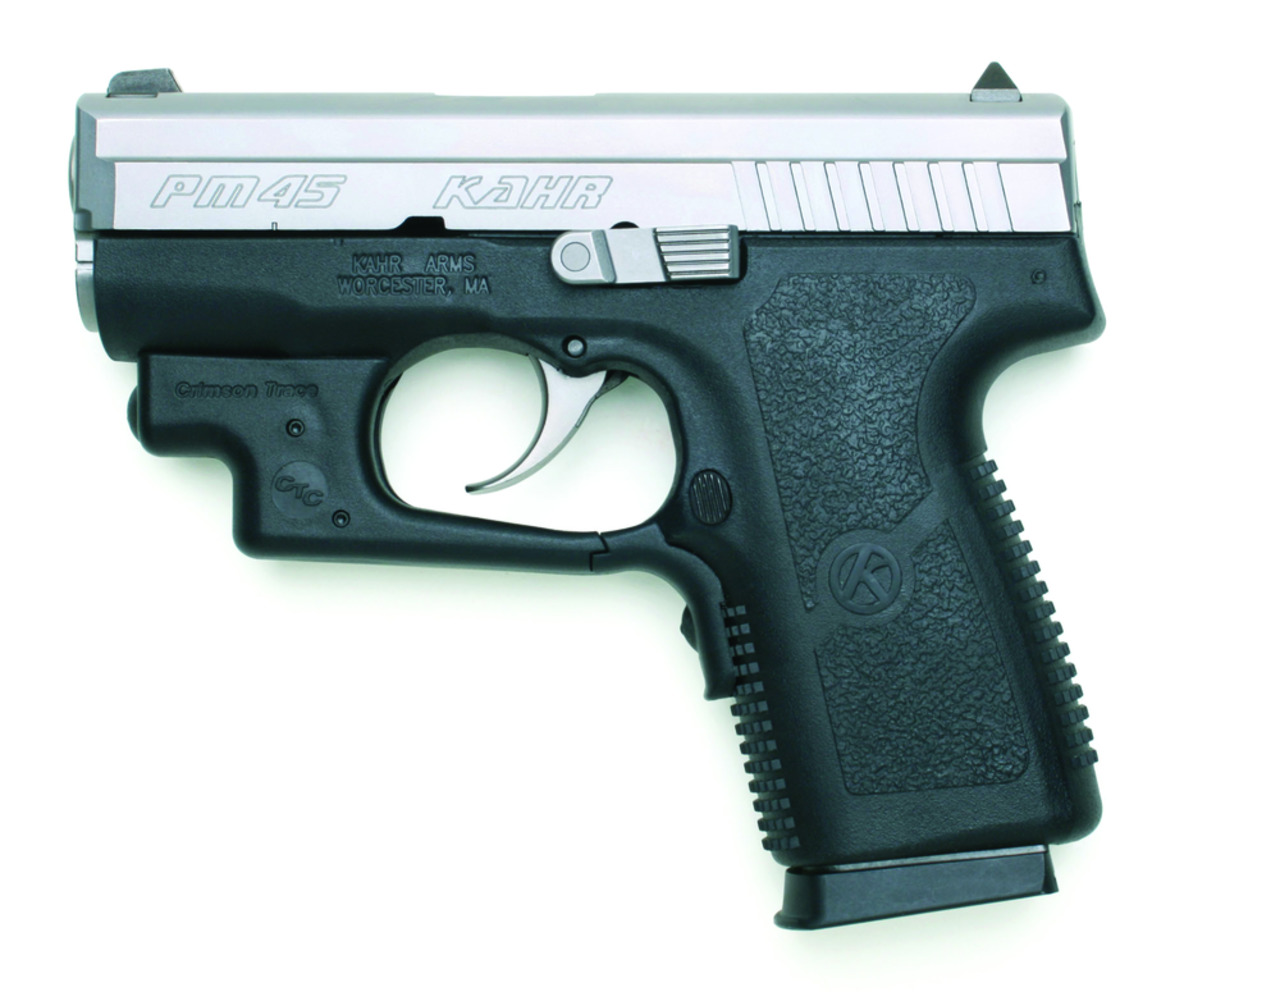 Kahr Firearms Group Models with Crimson Trace Laserguard in